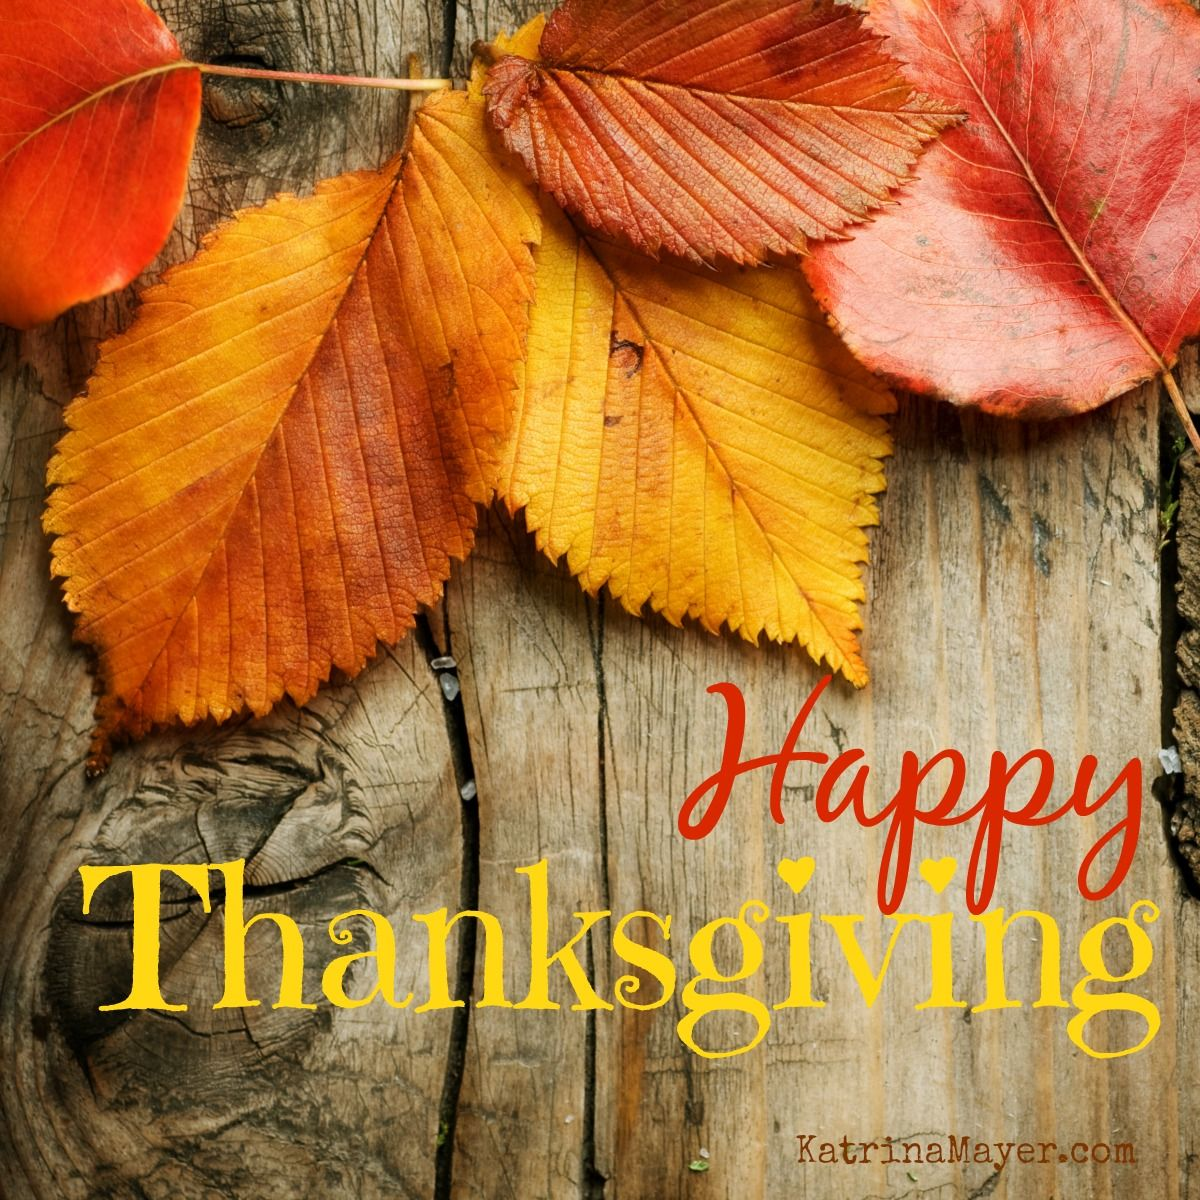 Happy Thanksgiving We Wish All Our Friends Contributors And